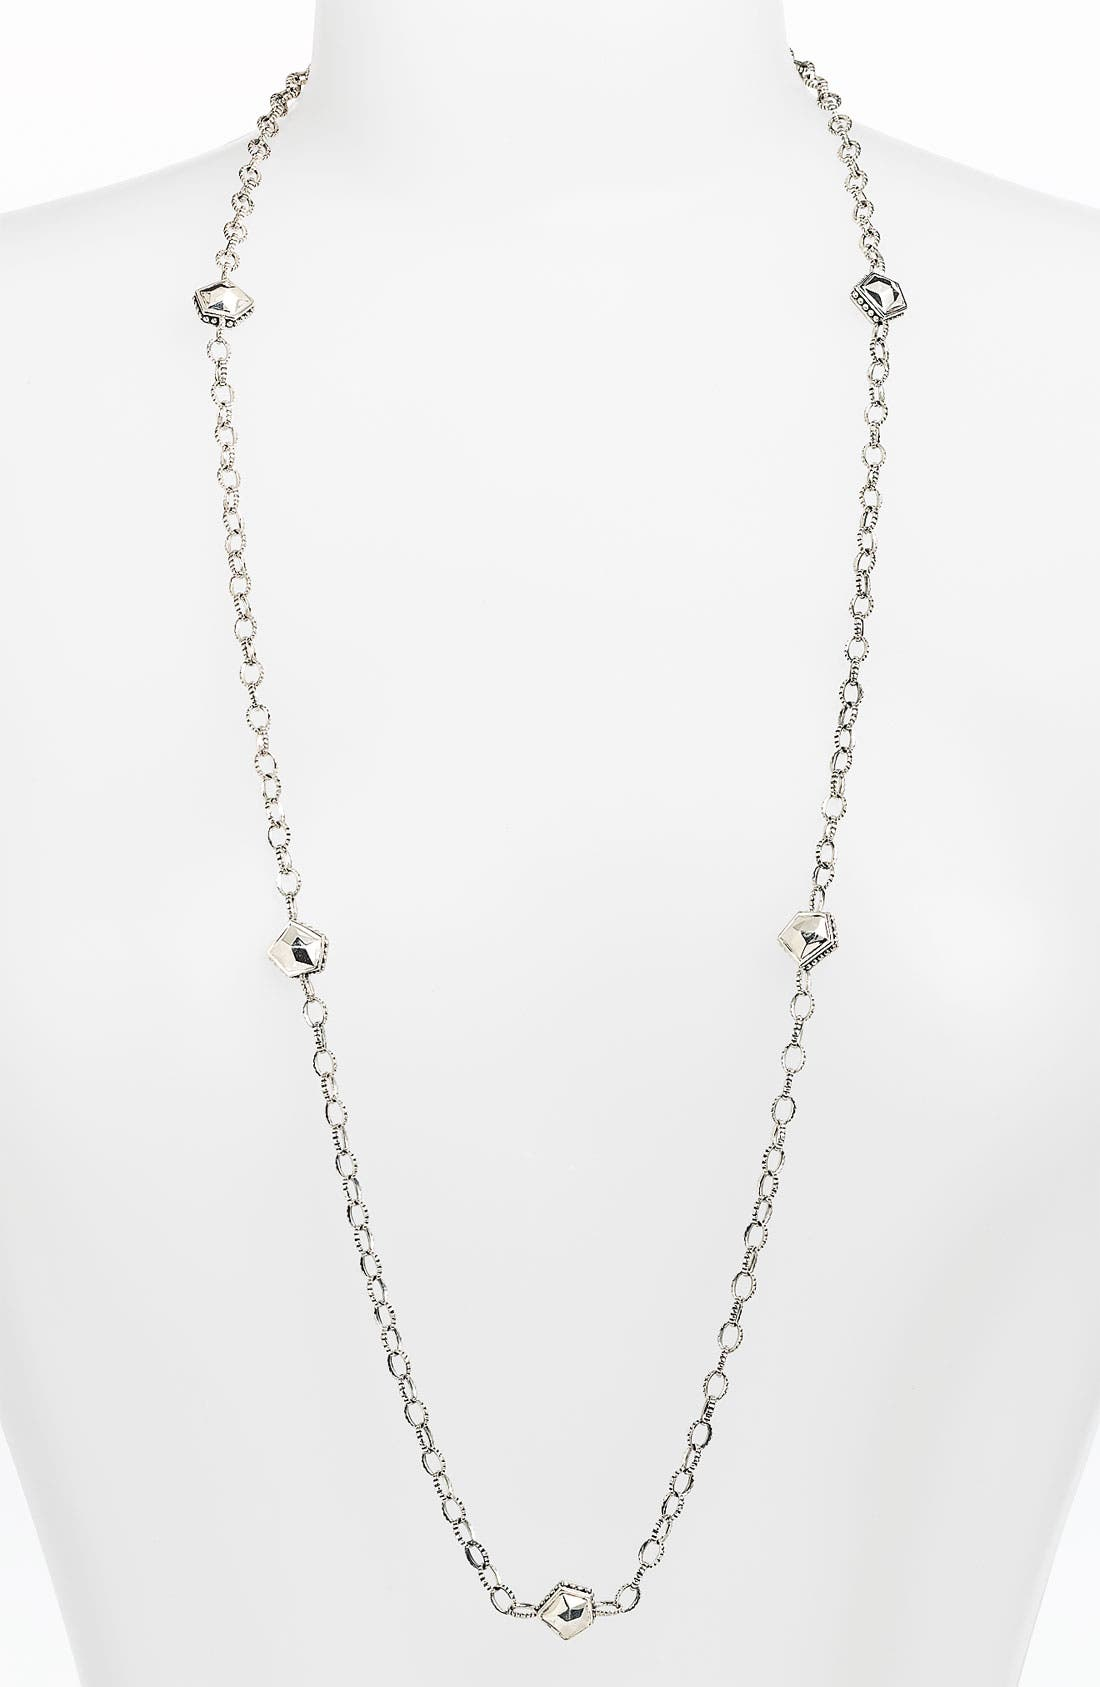 Main Image - LAGOS 'Silver Rocks' Long Station Necklace